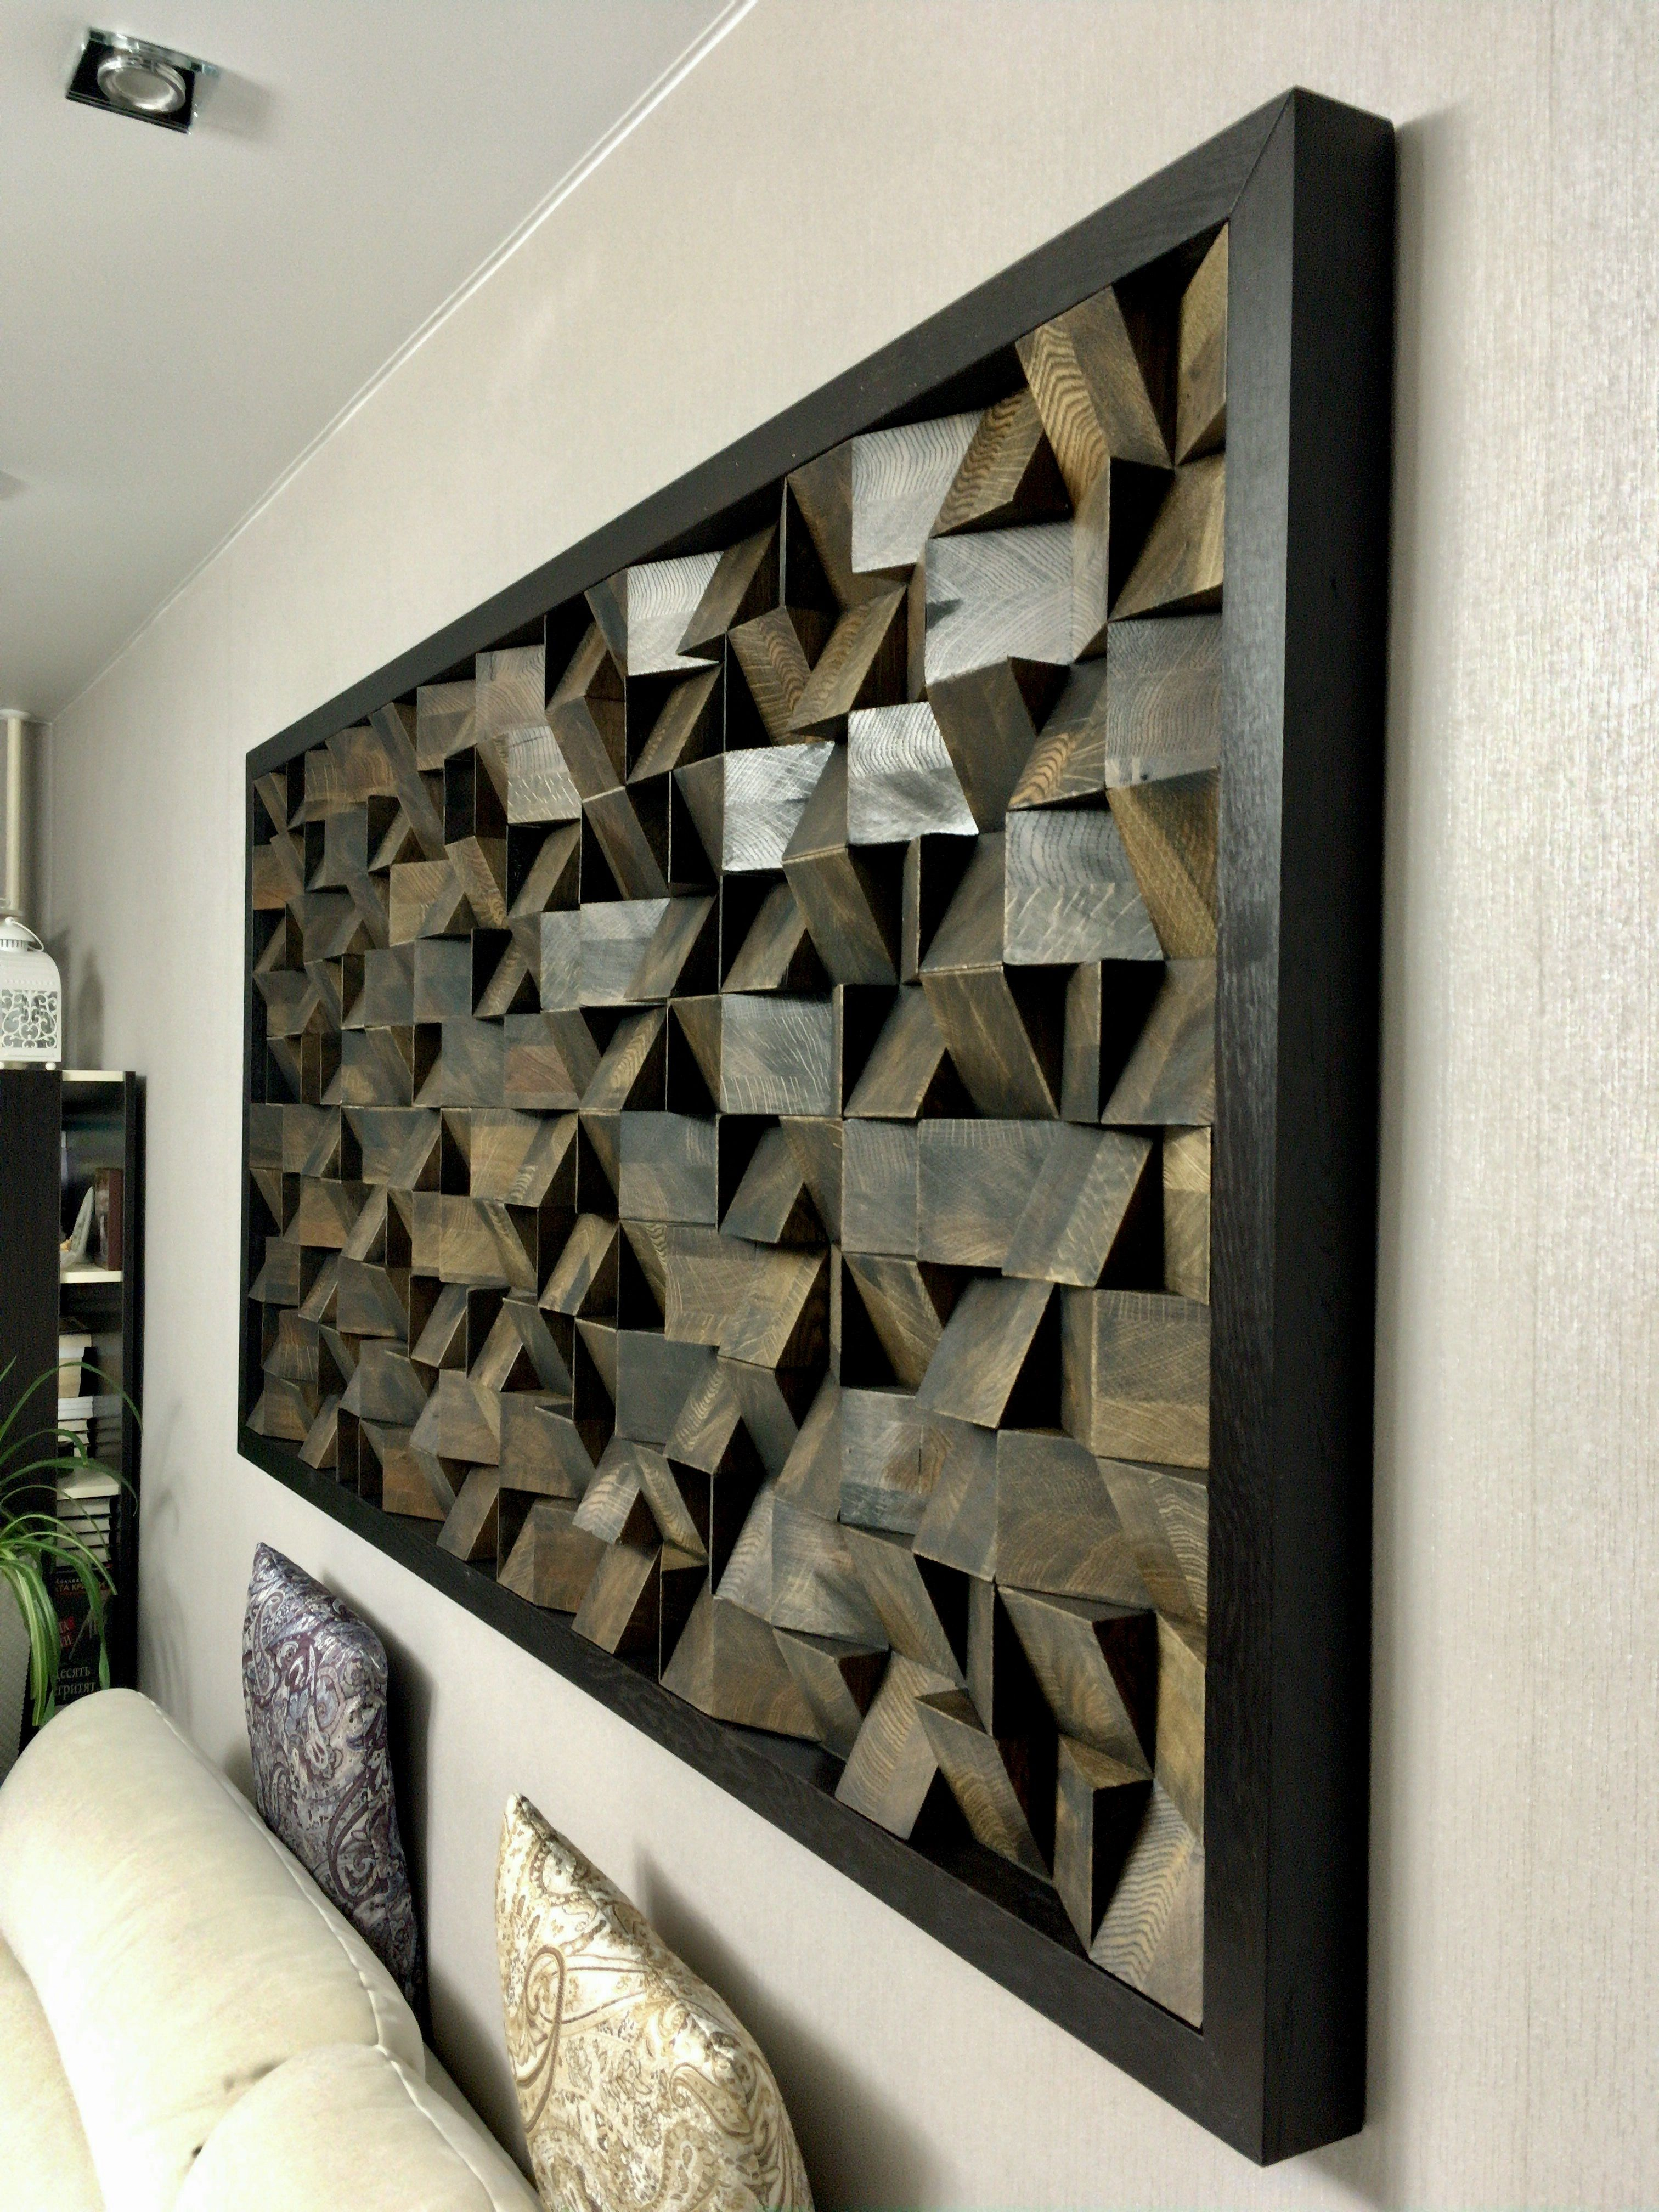 Pin By Carlo Ruth On Arch Int Finishes Decor Wooden Wall Art Interior